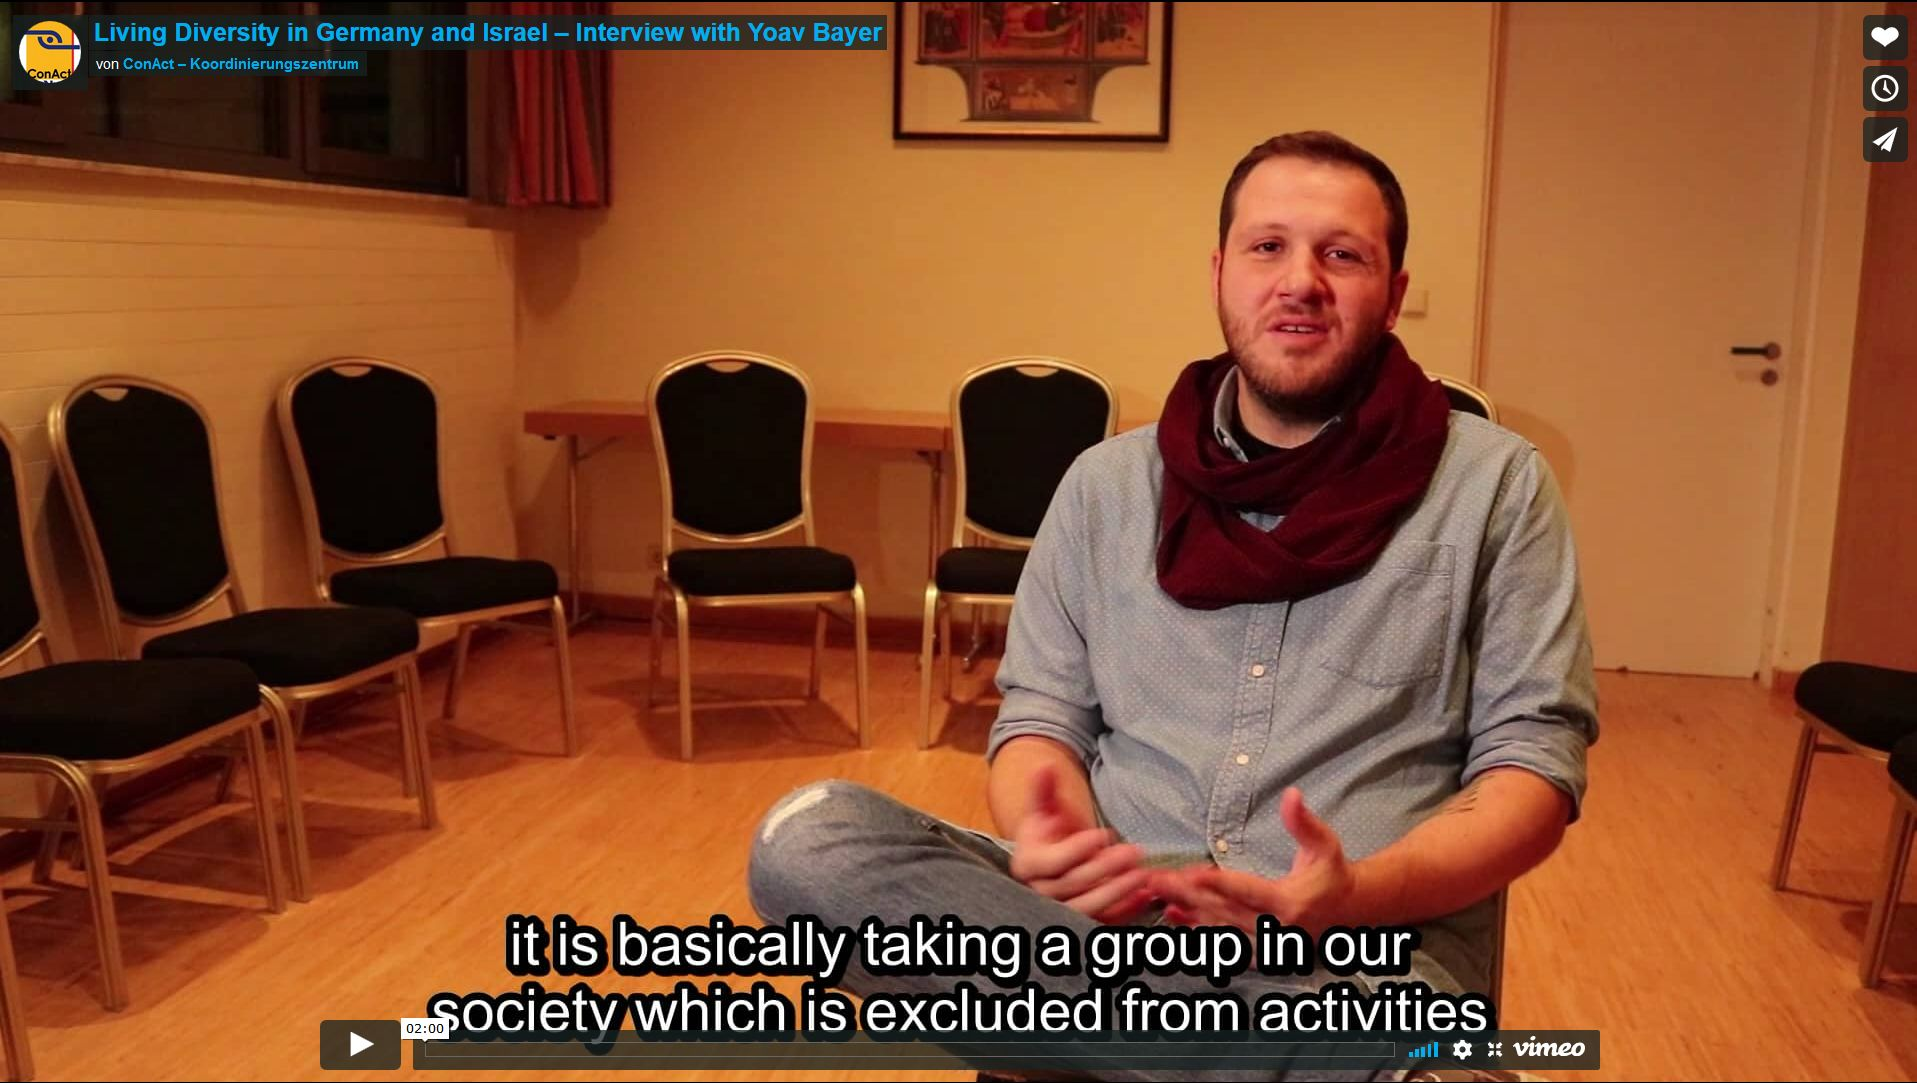 Living Diversity in Germany and Israel – Interview with Yoav Bayer